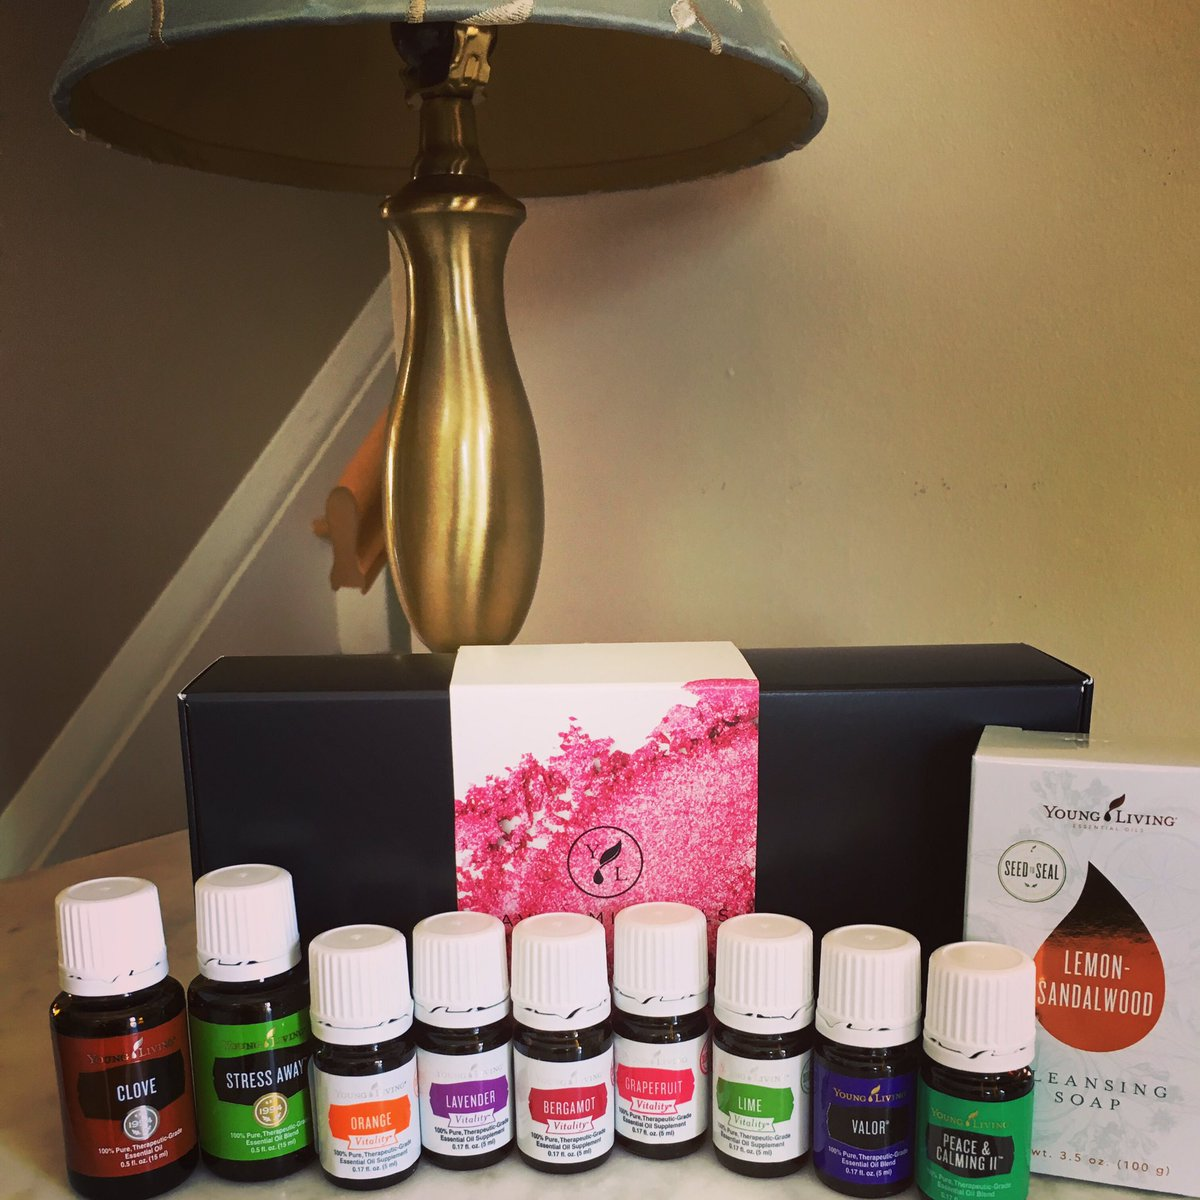 One of my favorite days is when my Young Living products get delivered!💗💗💗#deliveryday #happy #thankful https://t.co/f8Dj9Upvv2